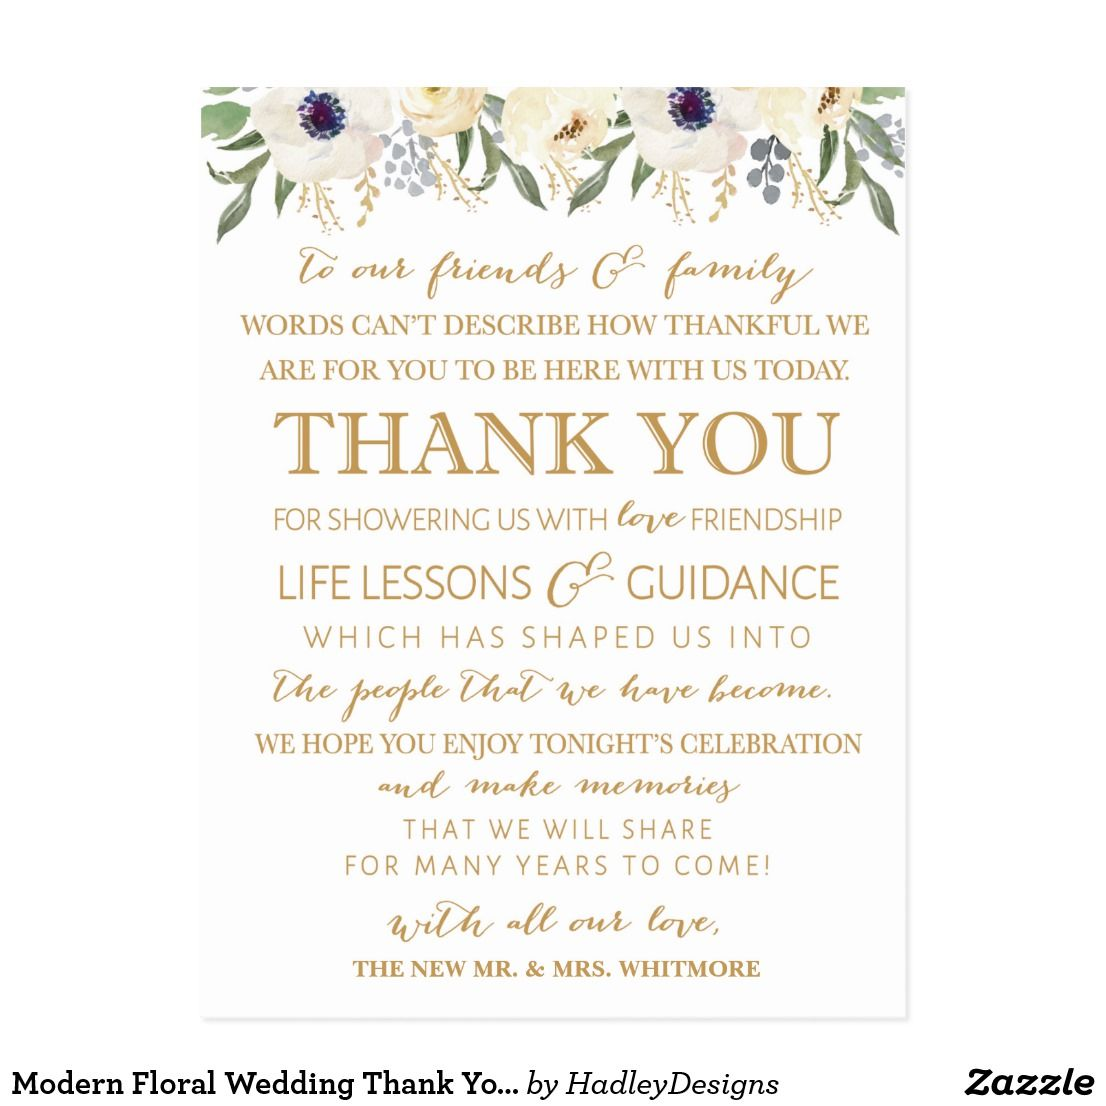 Modern Floral Wedding Thank You Place Card | Pinterest | Place card ...